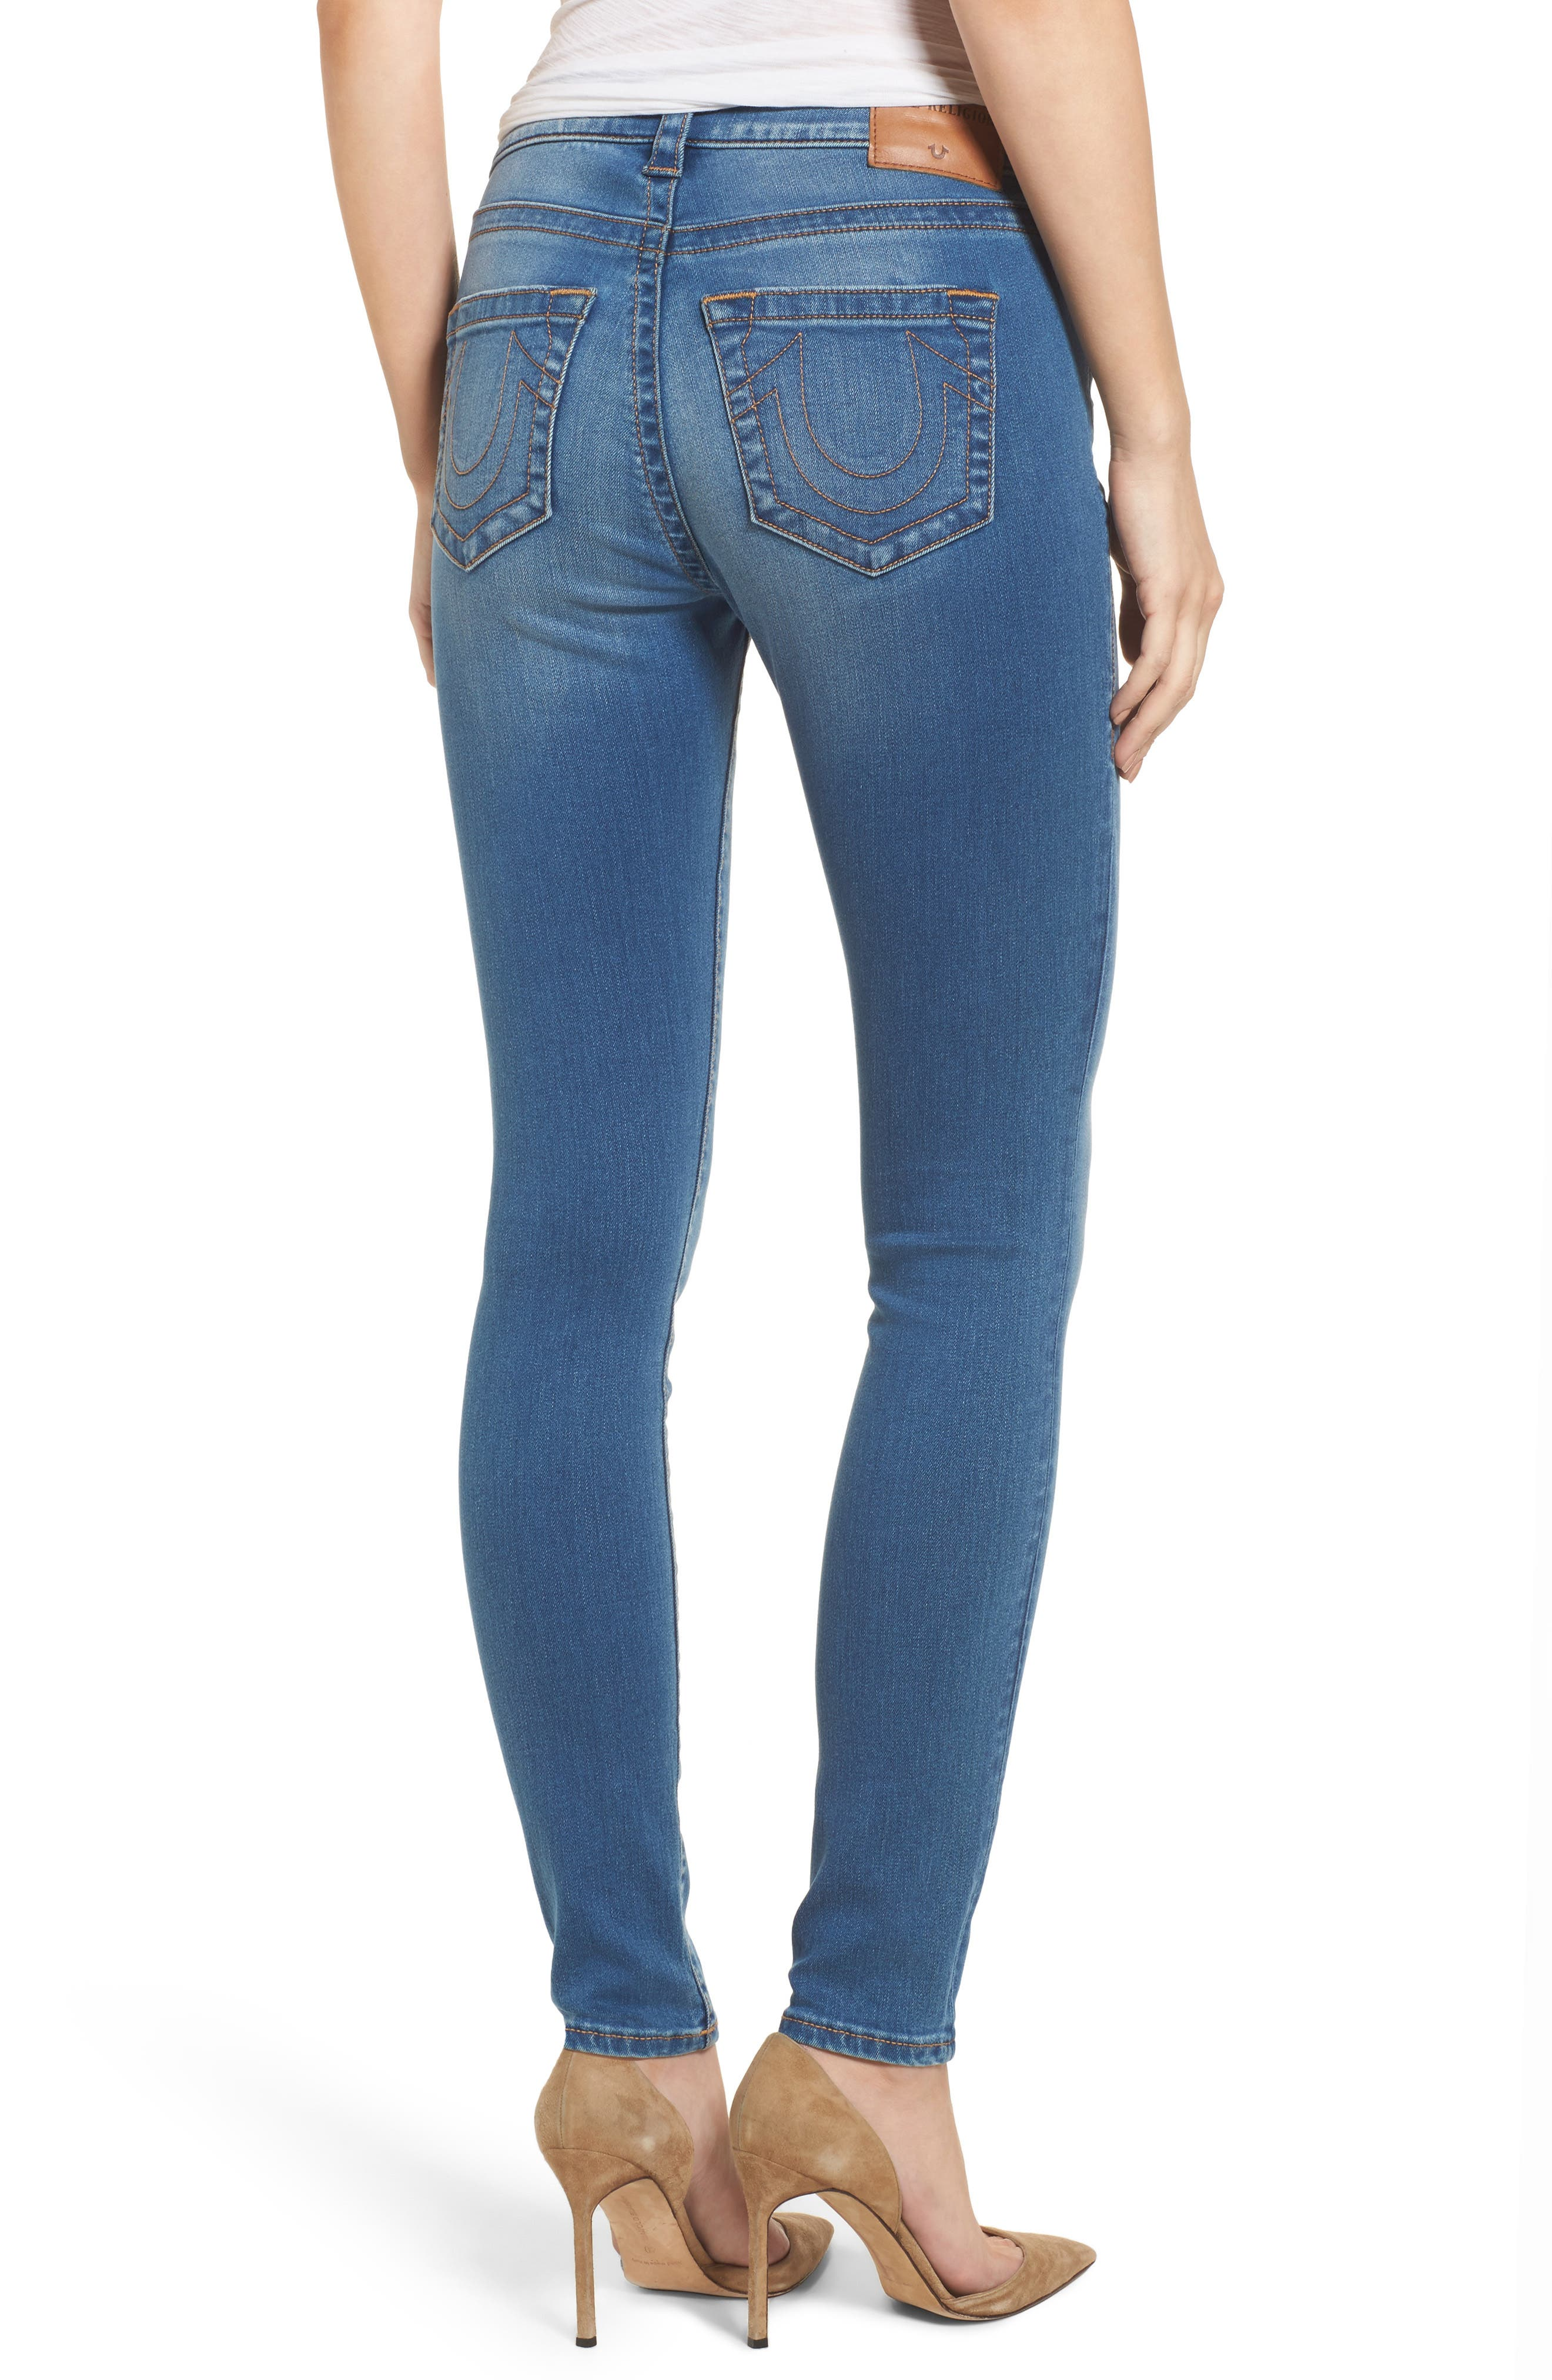 Jennie Curvy Skinny Jeans,                             Alternate thumbnail 2, color,